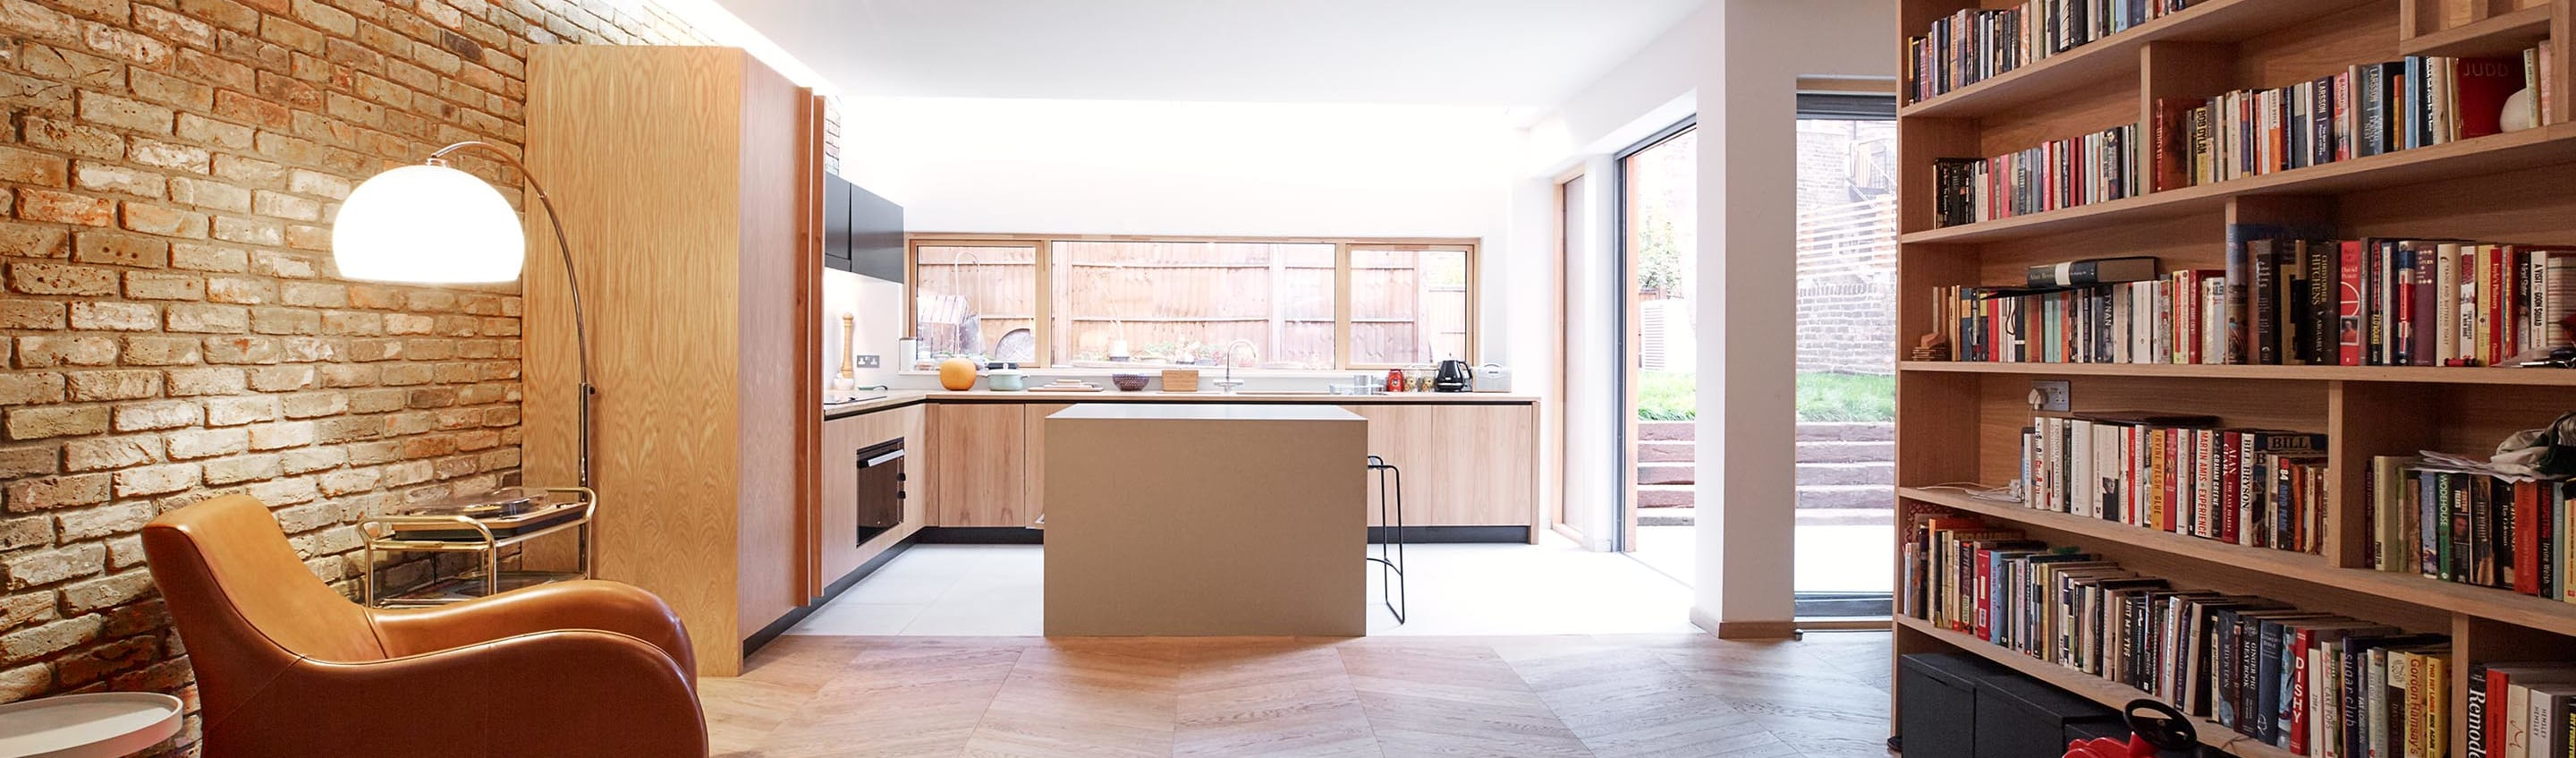 Courtyard House East Dulwich By Designcubed Homify # Muebles Cocina Die Kuche